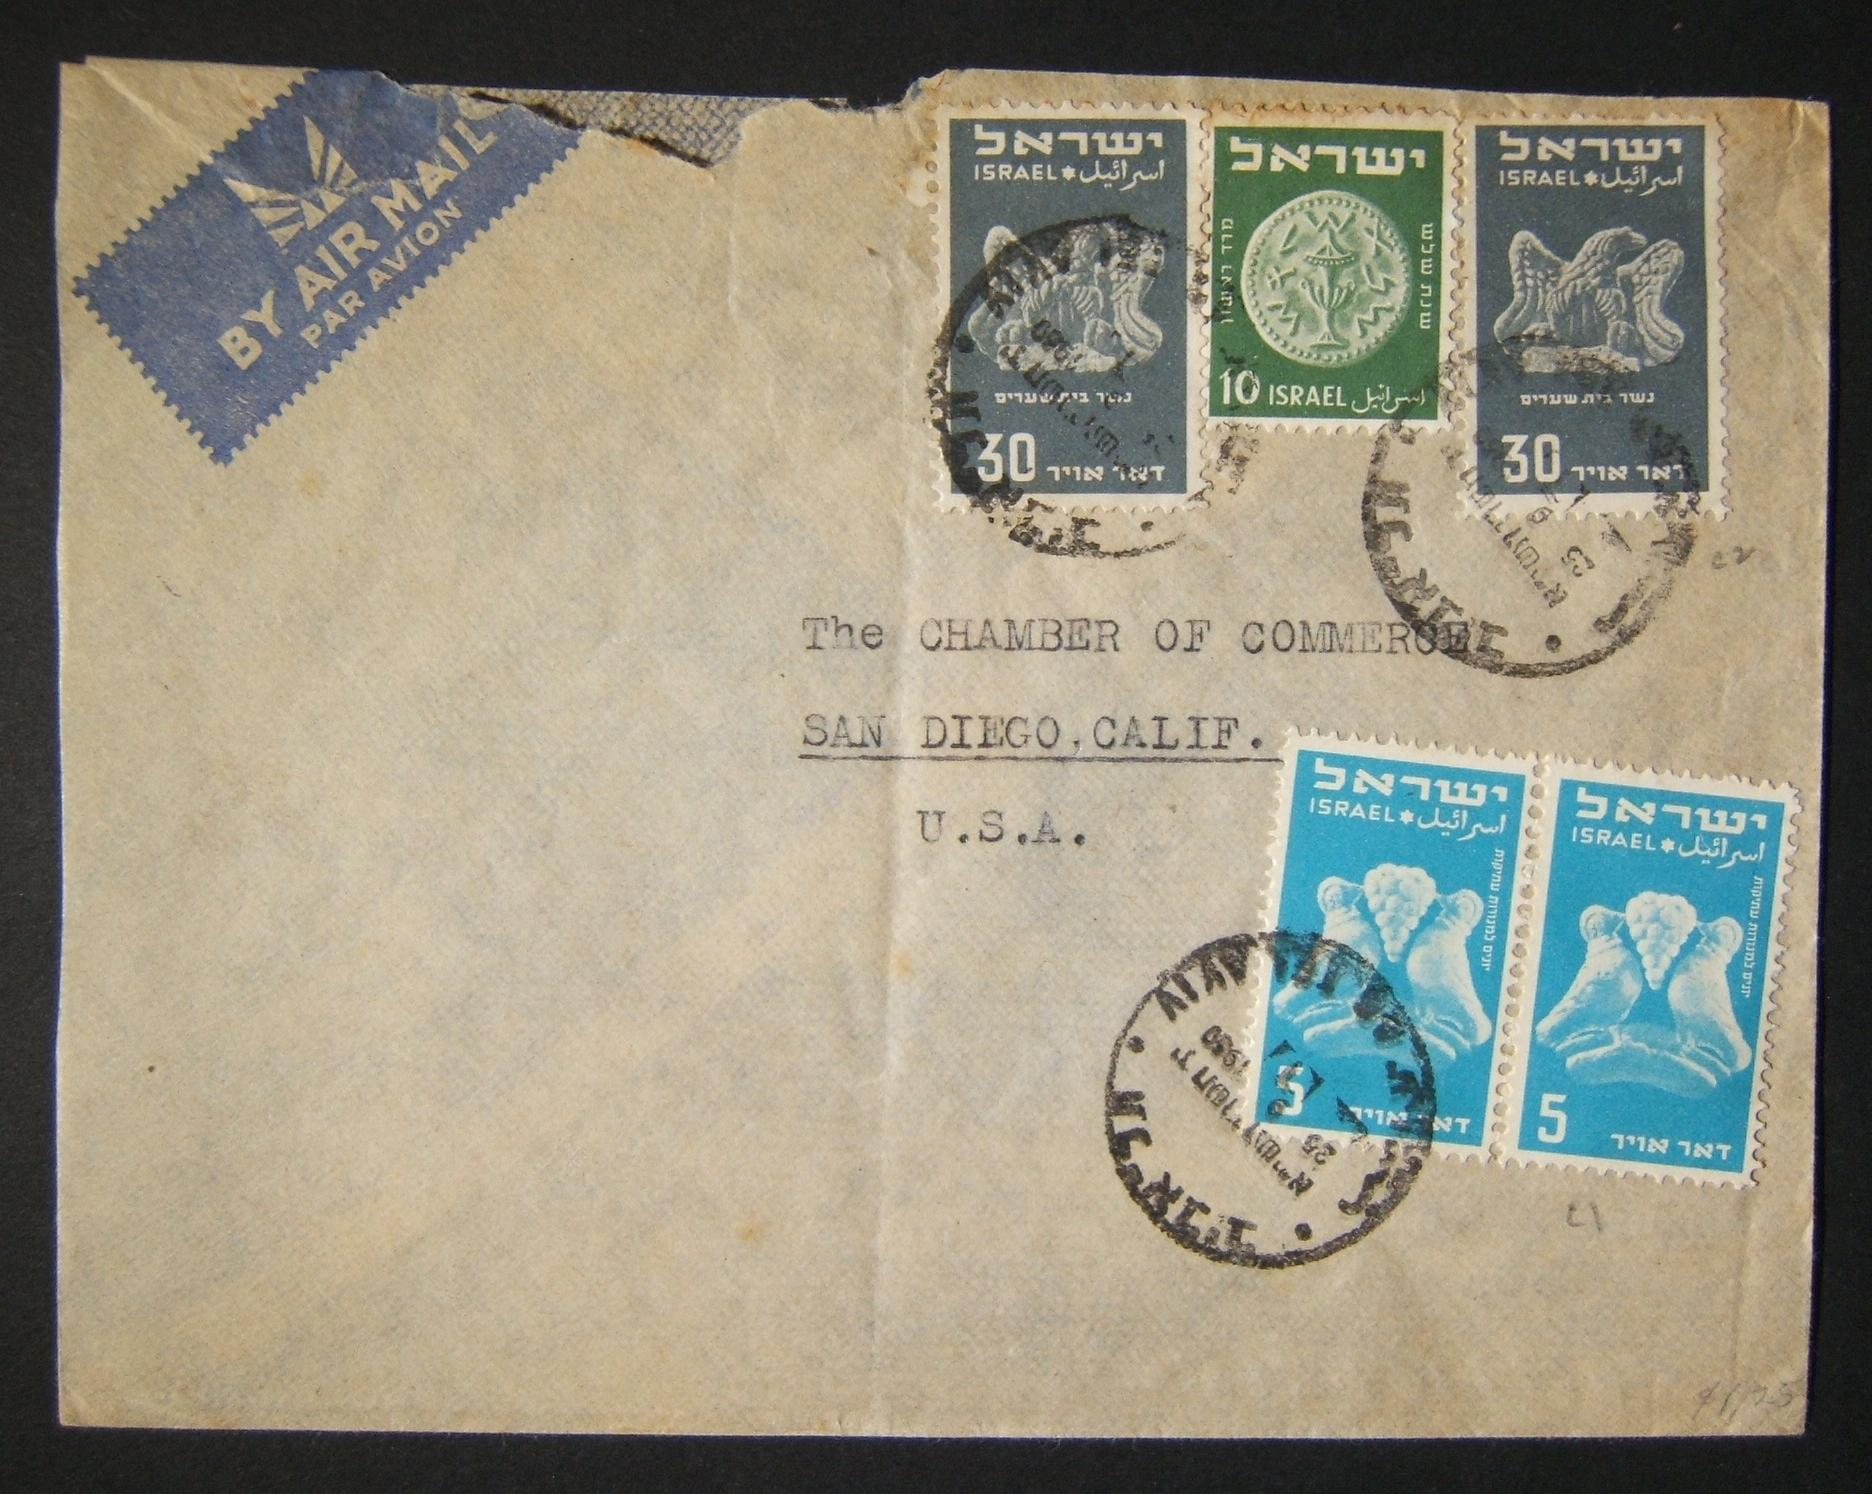 1950 1st airmail / PO's, rates & routes: 25-9-1950 airmail commercial cover ex TLV to SAN DIEGO franked 80pr at the FA-2a period rate using mix of pair 5pr & 2x 30pr (Ba32/33) + 10